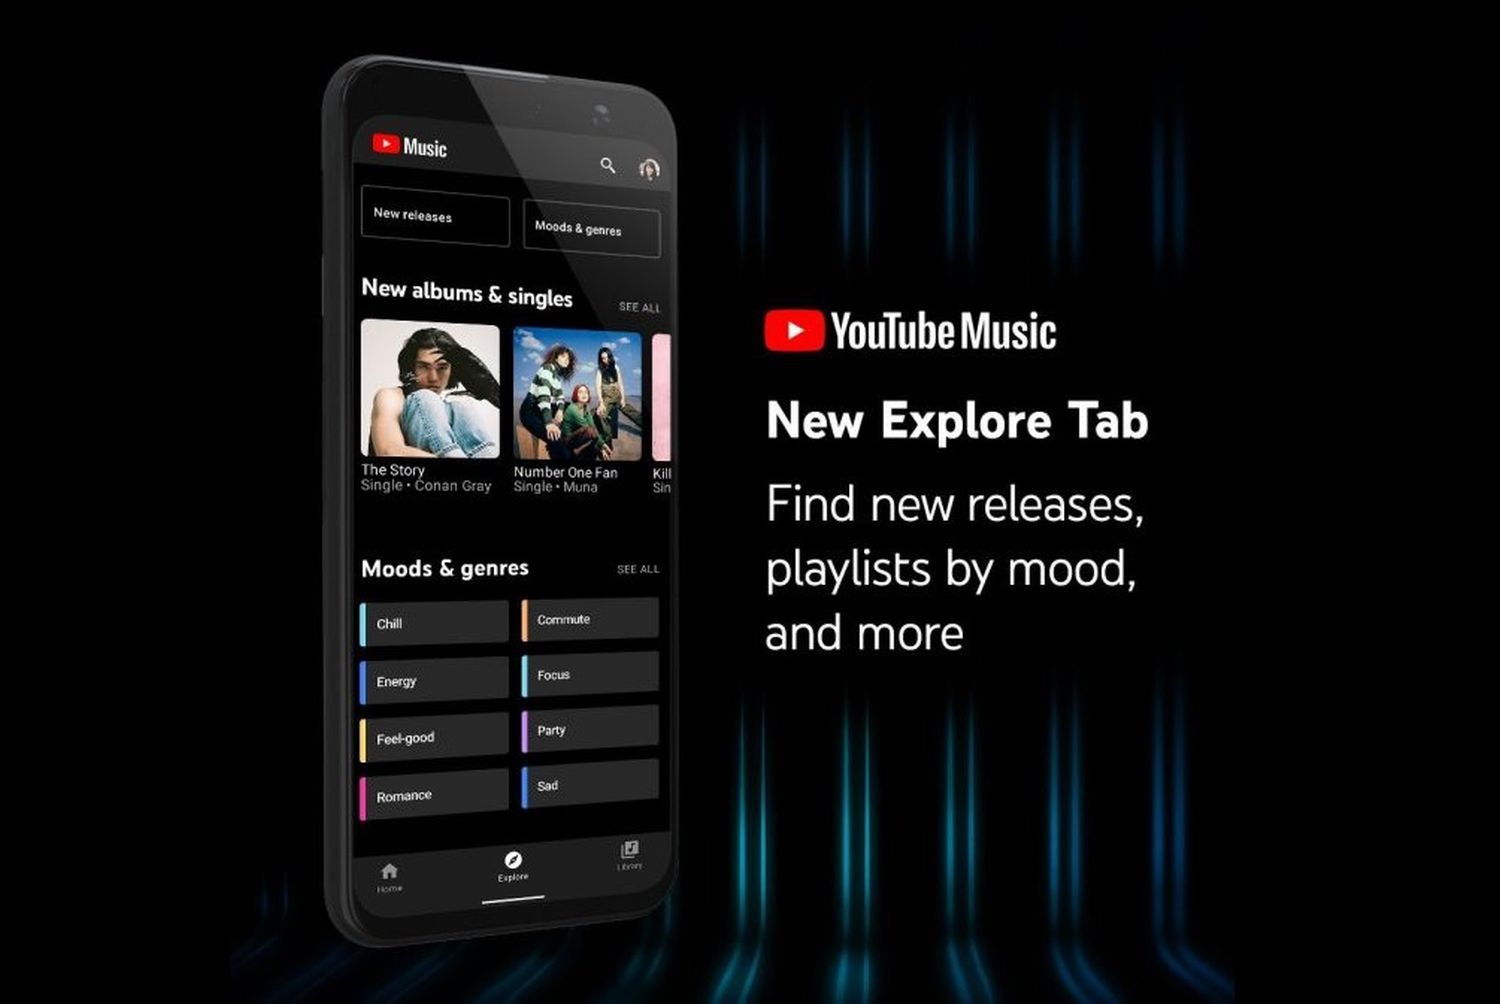 youtube music explore